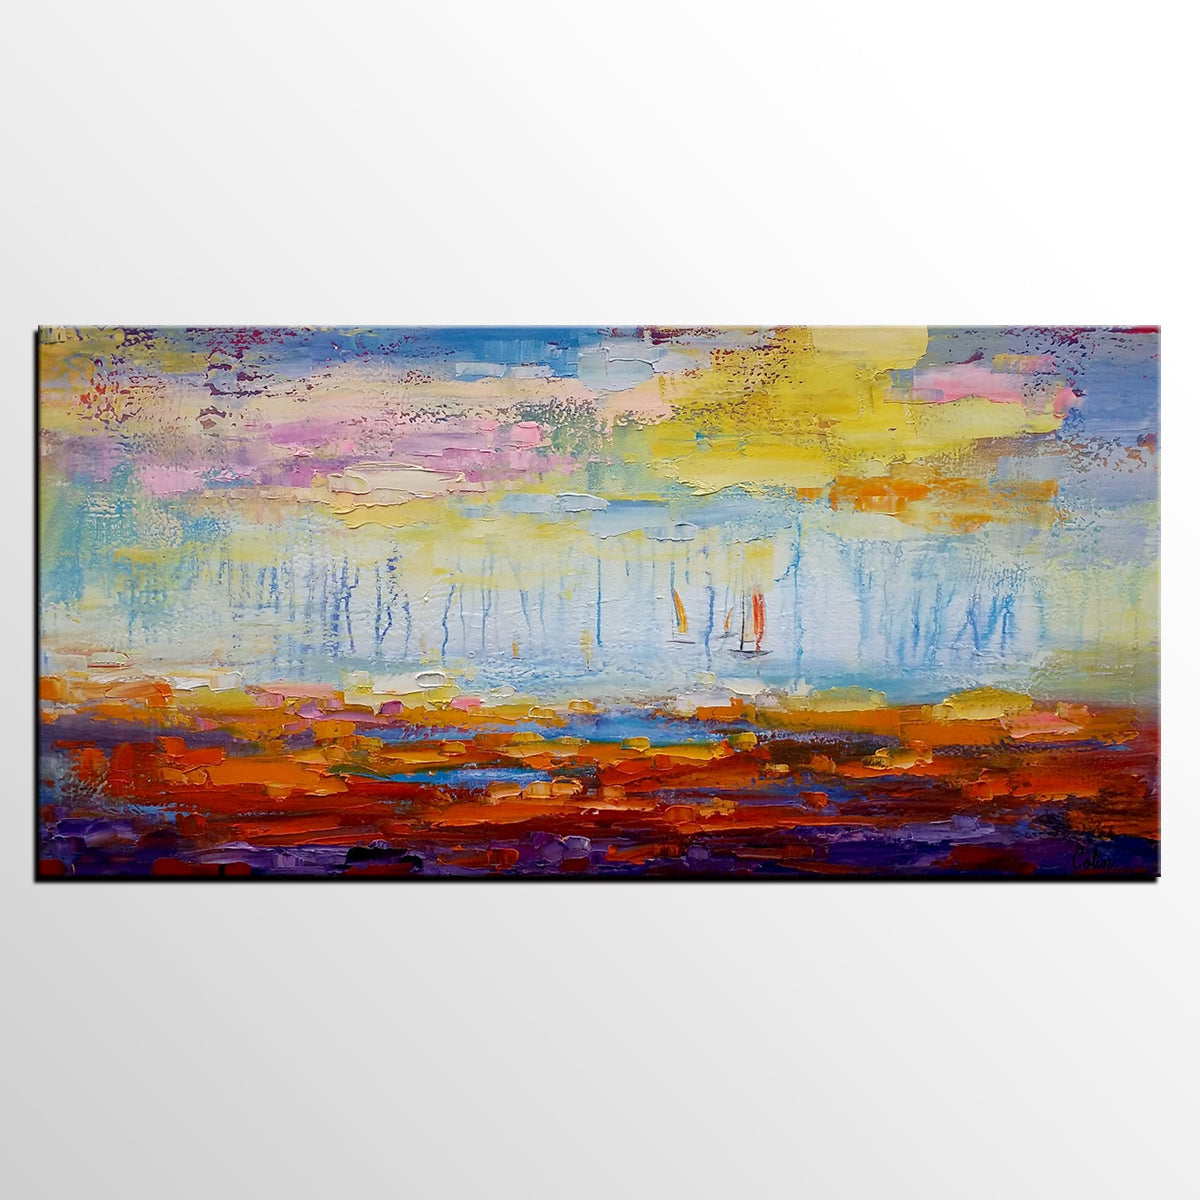 Abstract Wall Art, Landscape Painting, Canvas Wall Art, Abstract Artwork, Canvas Painting-artworkcanvas